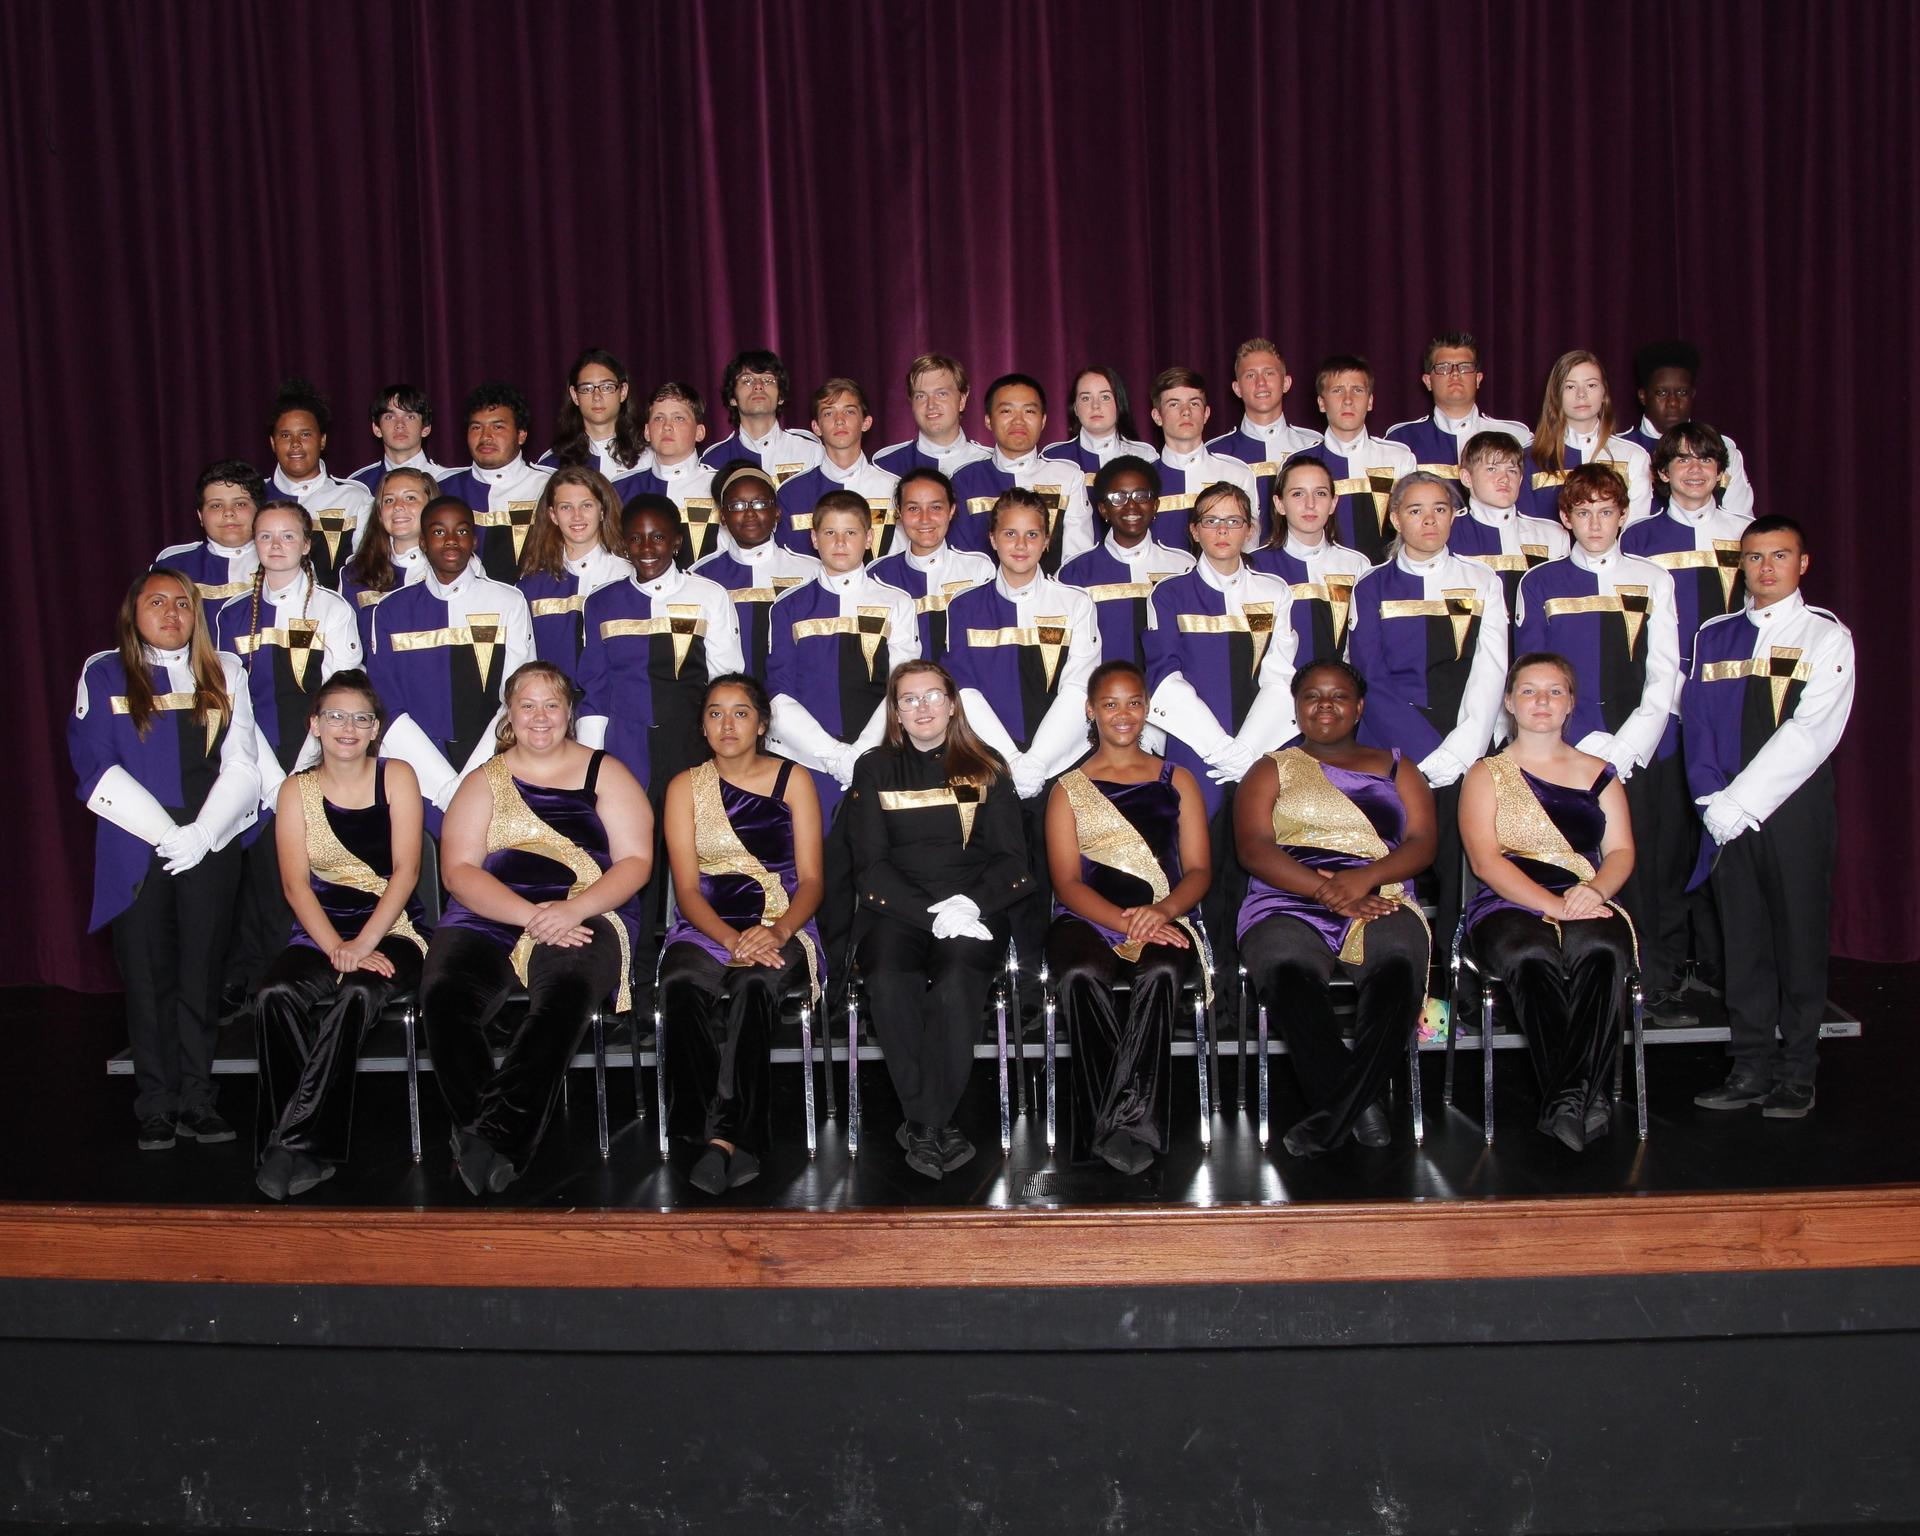 Pictured is the Panther Band